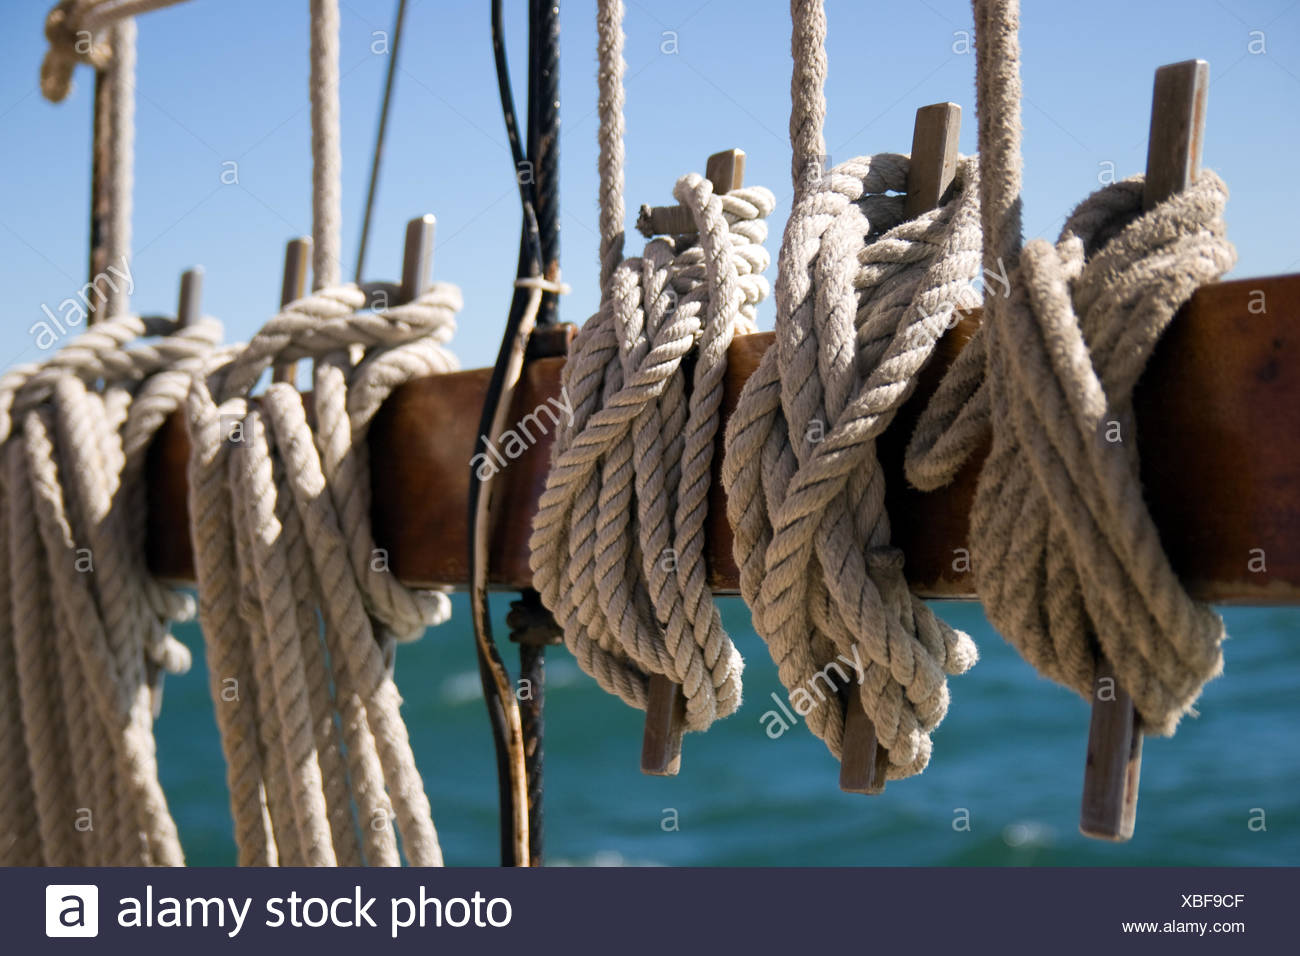 detail contrasts sailing boat - Stock Image